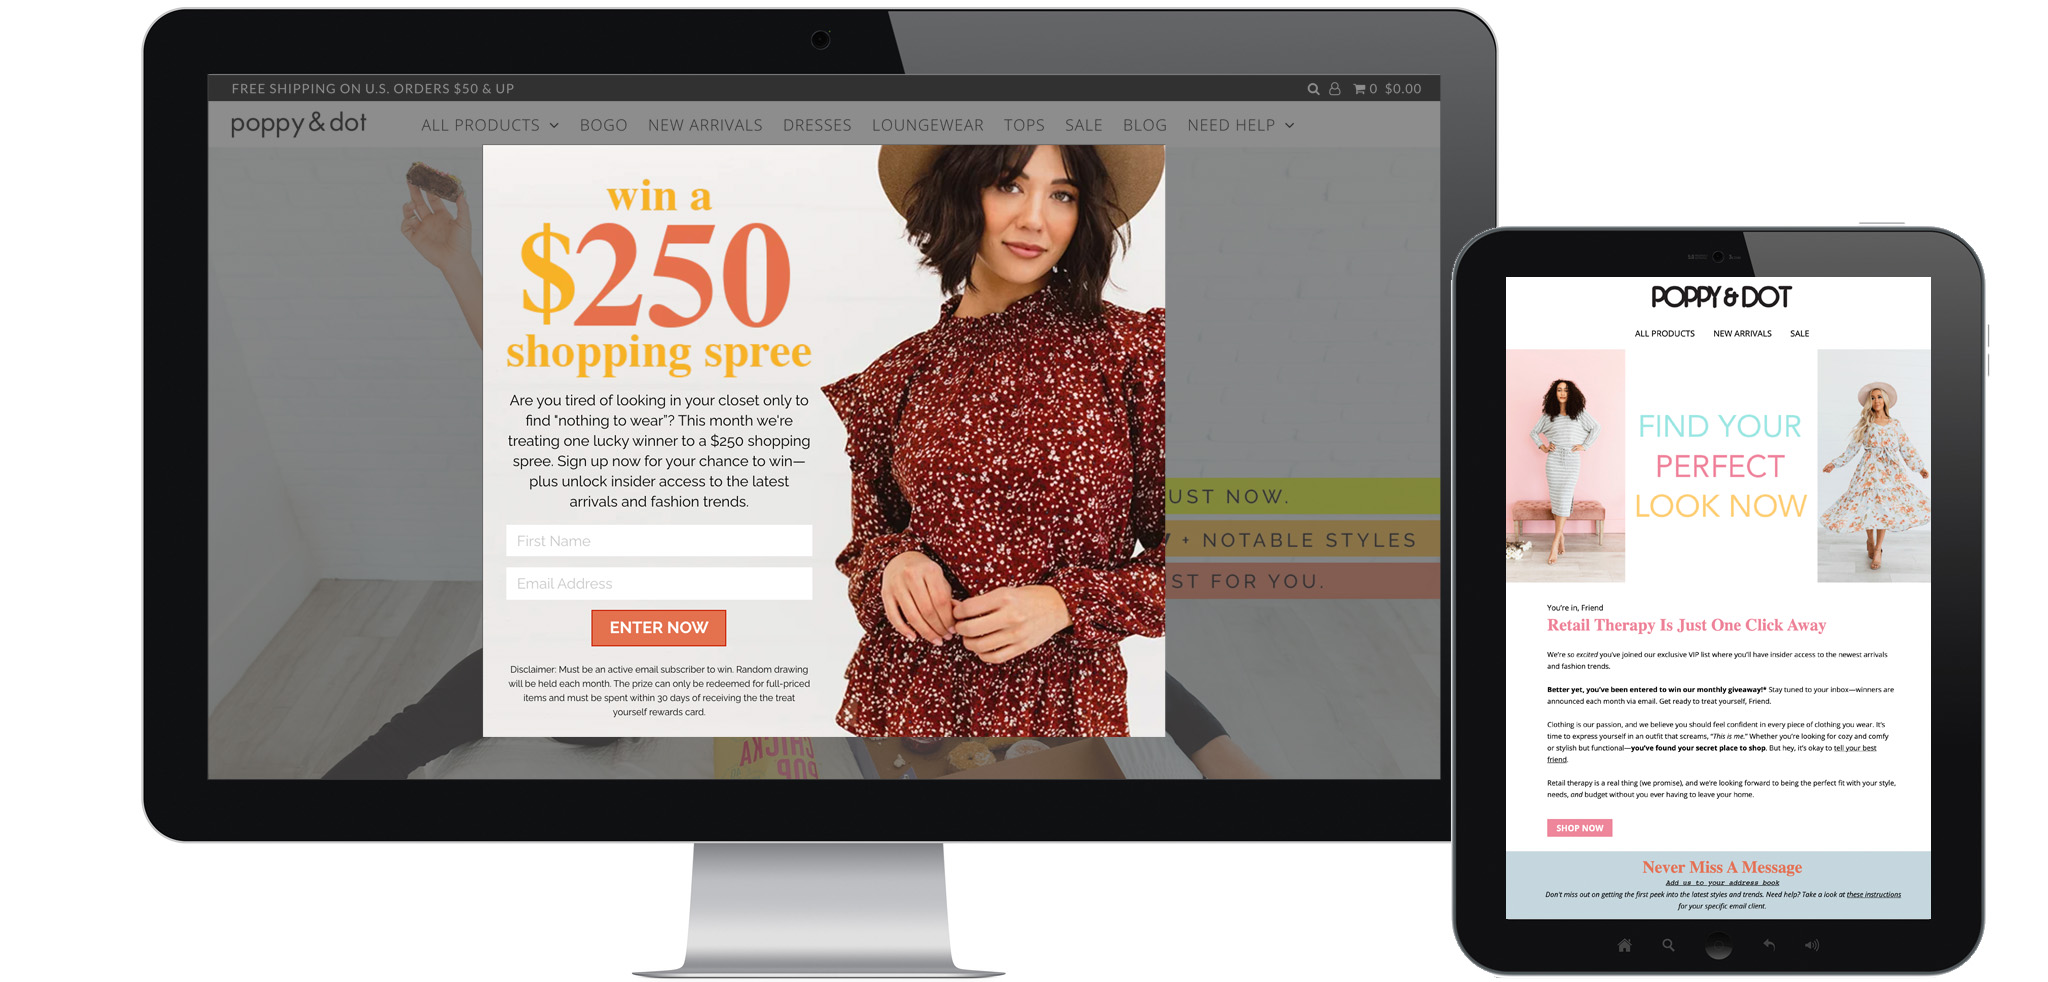 Melfred Borzall dug deep and uncovered a treasure trove of sales conversions